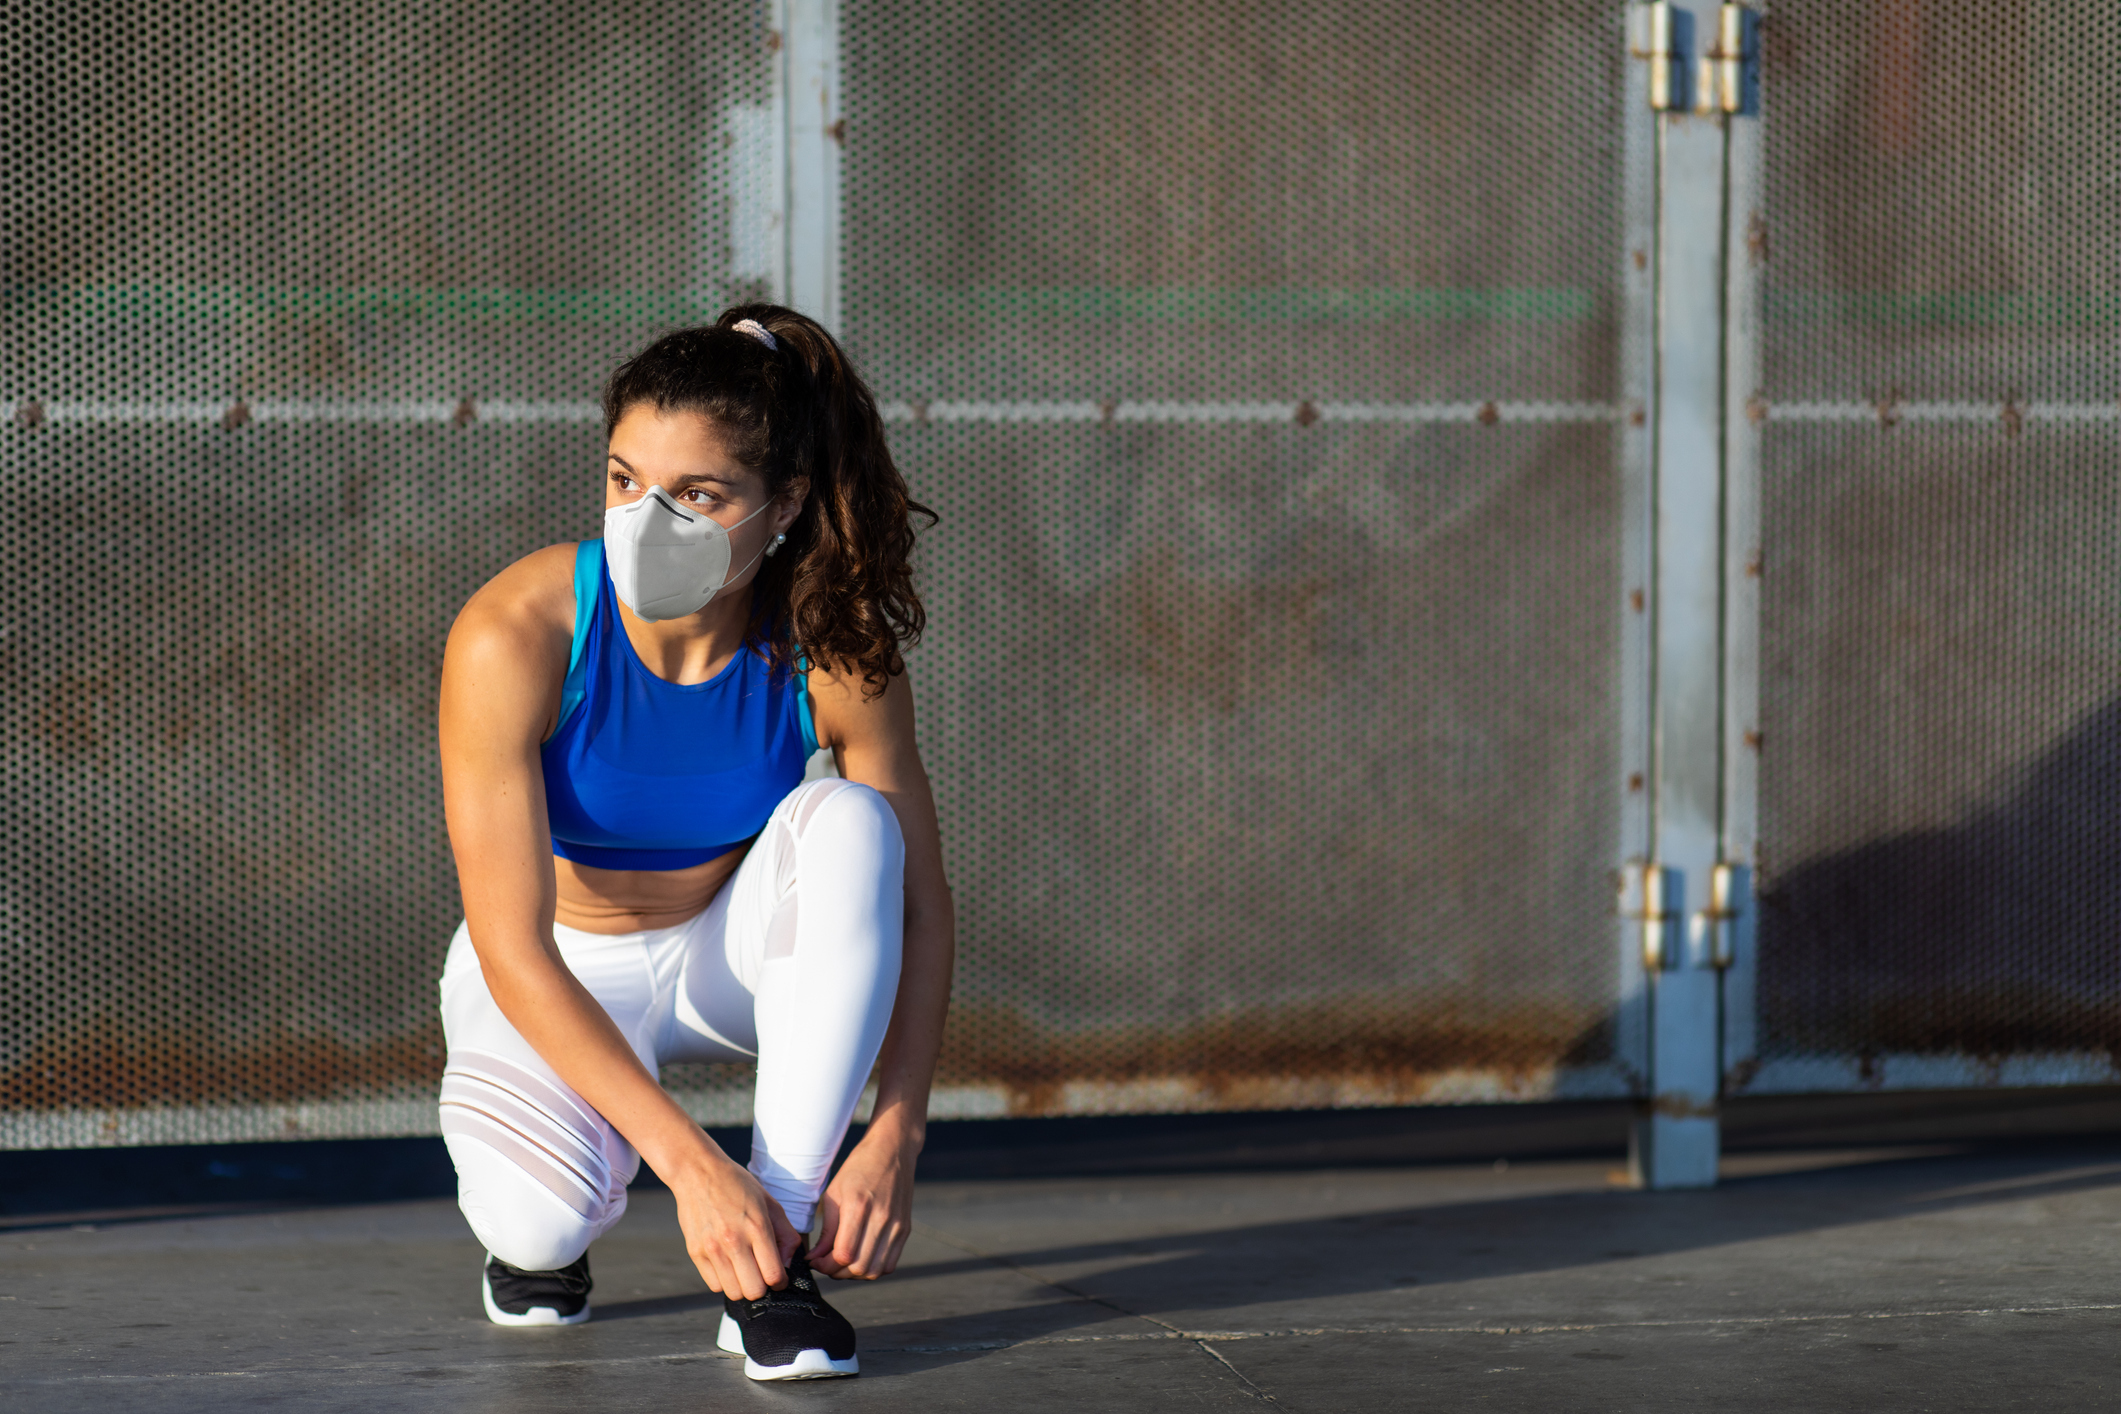 Young fit female athlete getting ready for running under coronavirus pandemic crisis